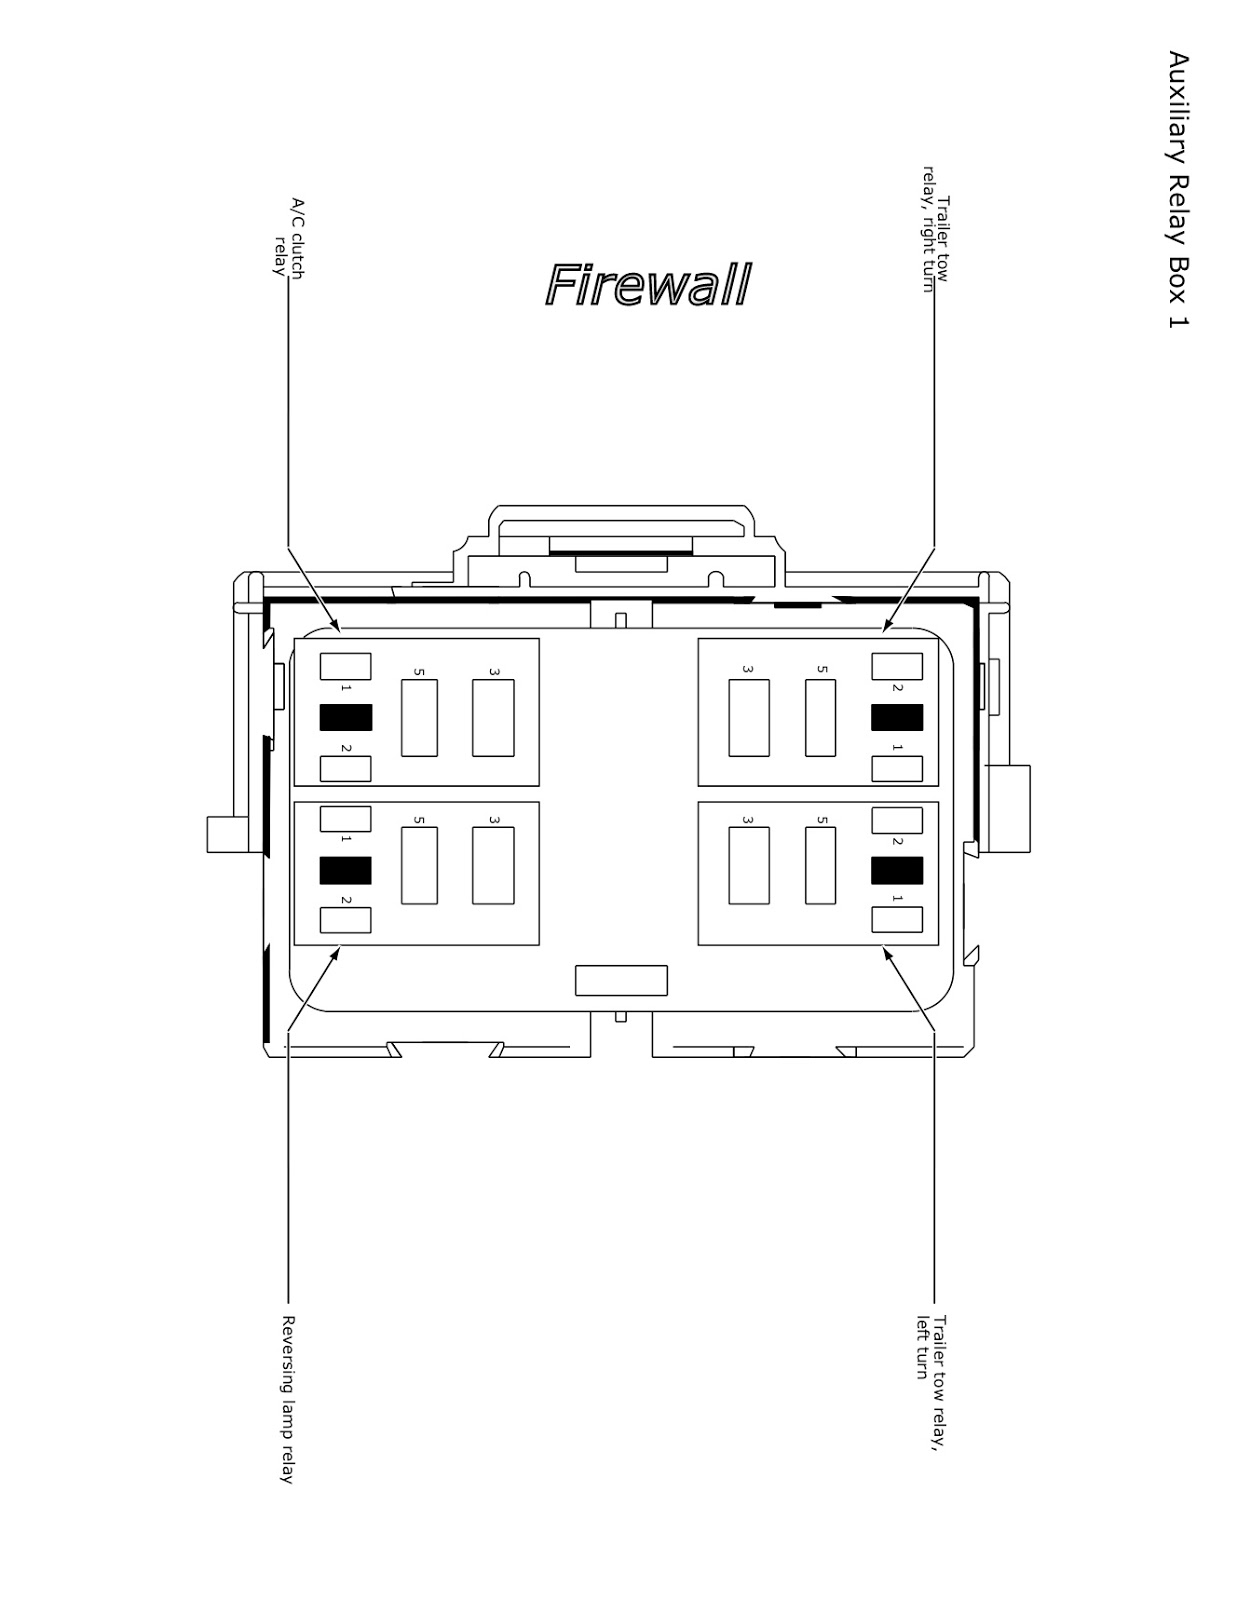 The Lazy Daze Companion Velvac Mirror Wiring Diagram Part Numbers If 26 Is Ok Check Two Of Relays In Box Mounted On Firewall Directly Behind Fuse Pictured Above